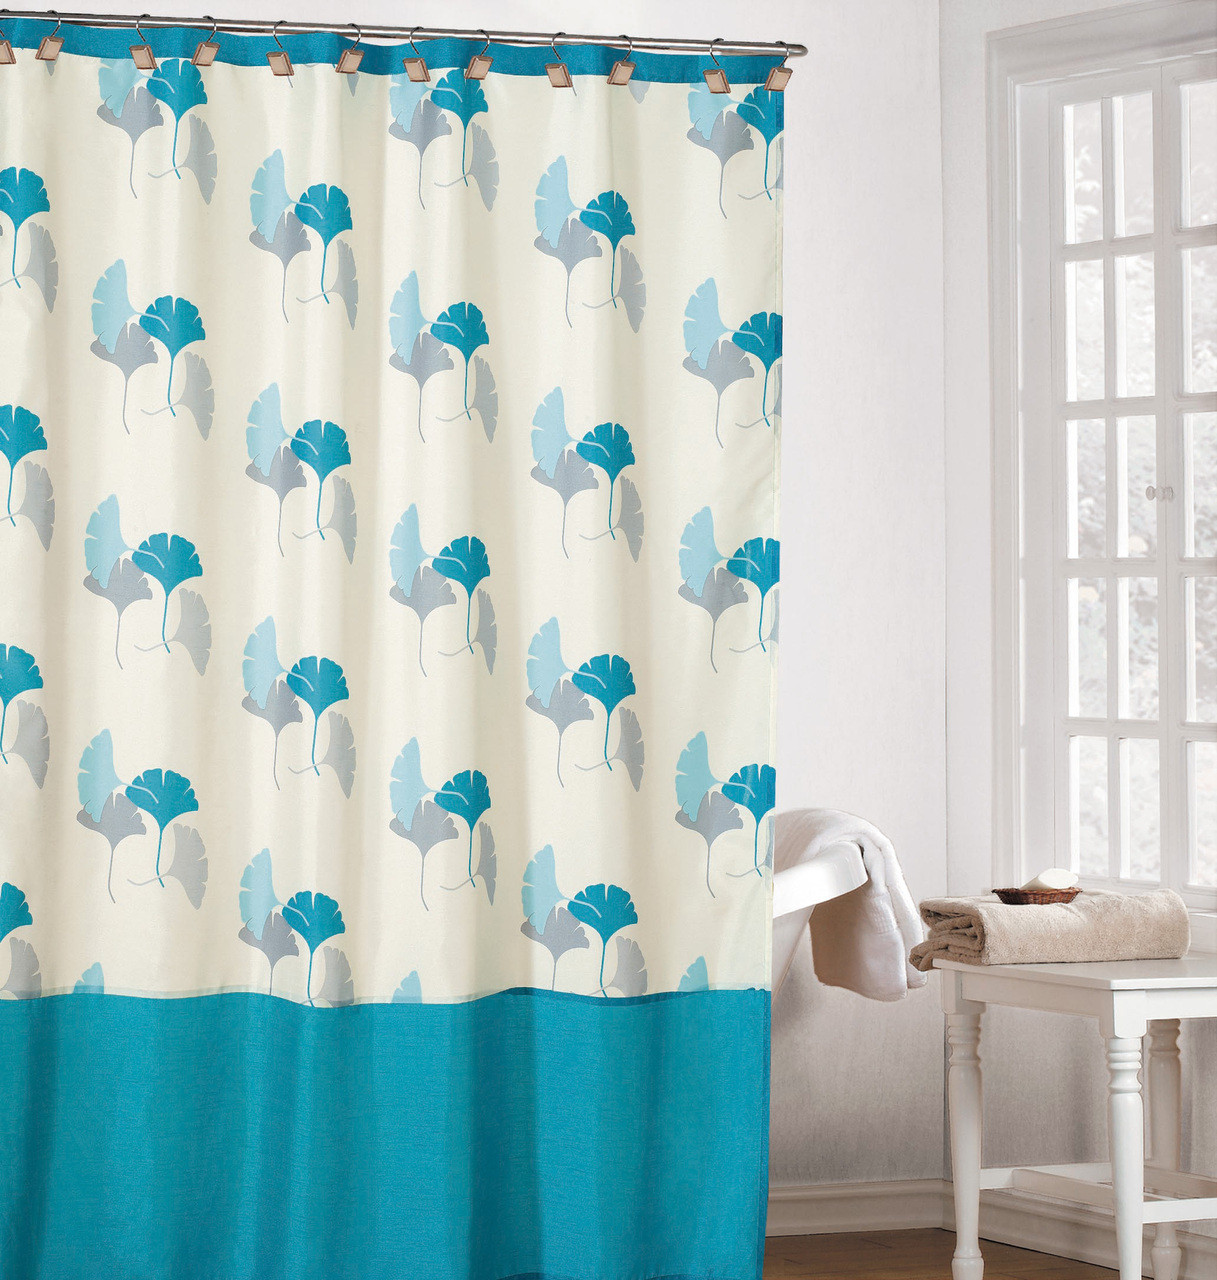 Refreshing Off White Color Fabric Shower Curtain With Light Blue